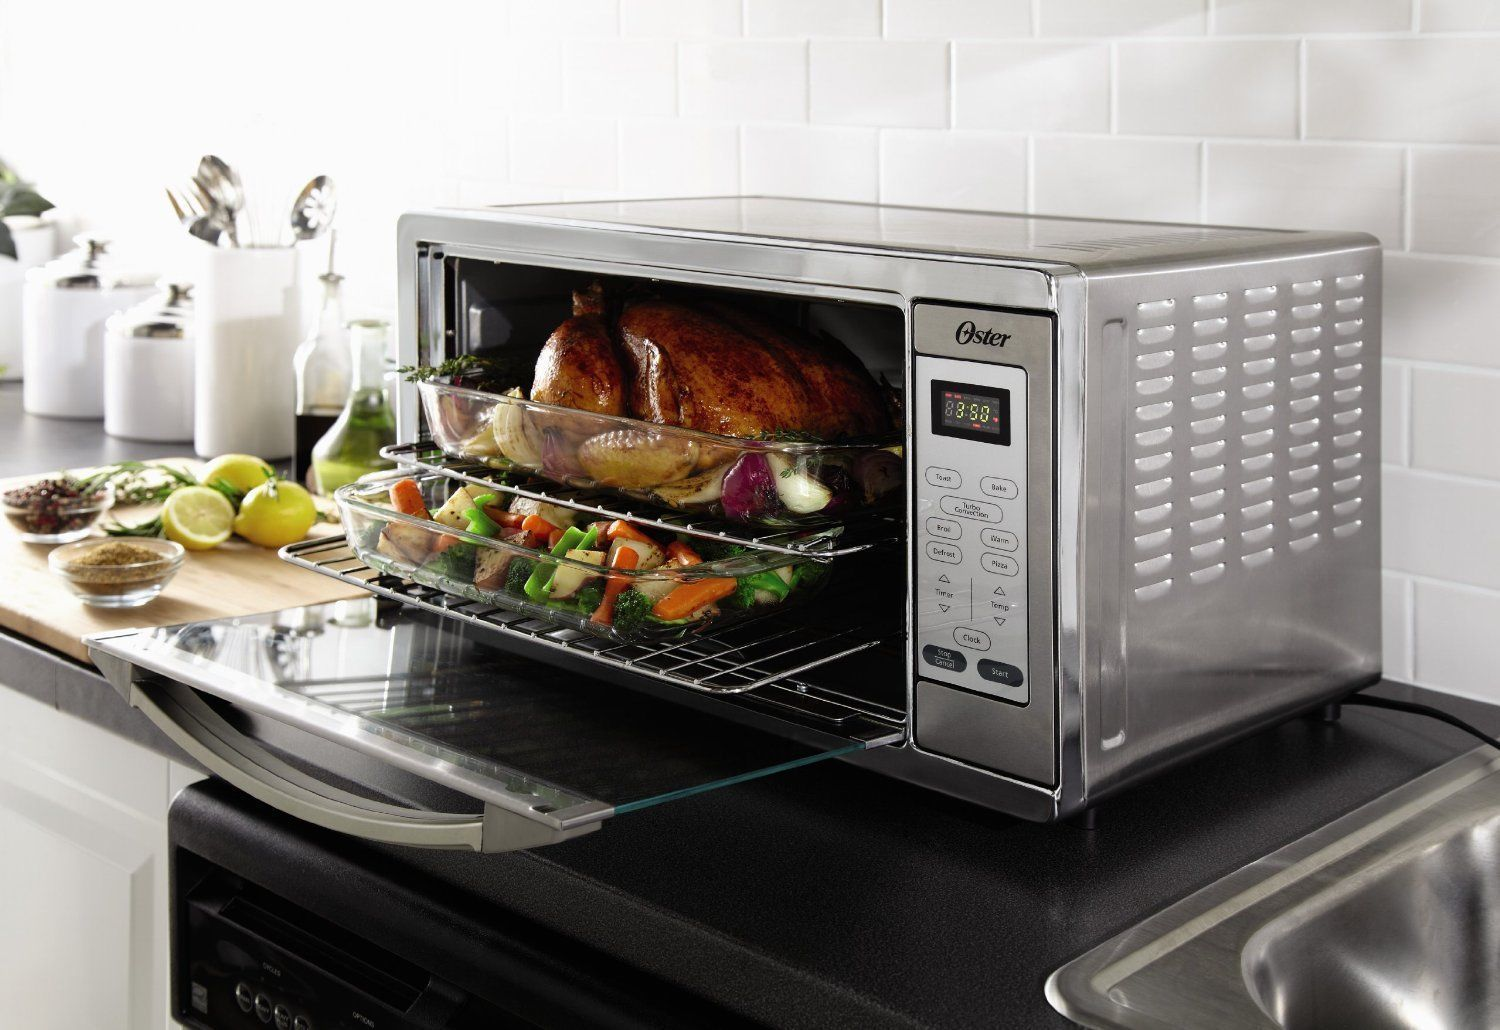 Countertop Microwave Convection Oven Combo : Convection Countertop Stove Microwave Conventional Pizza Turbo Oven ...